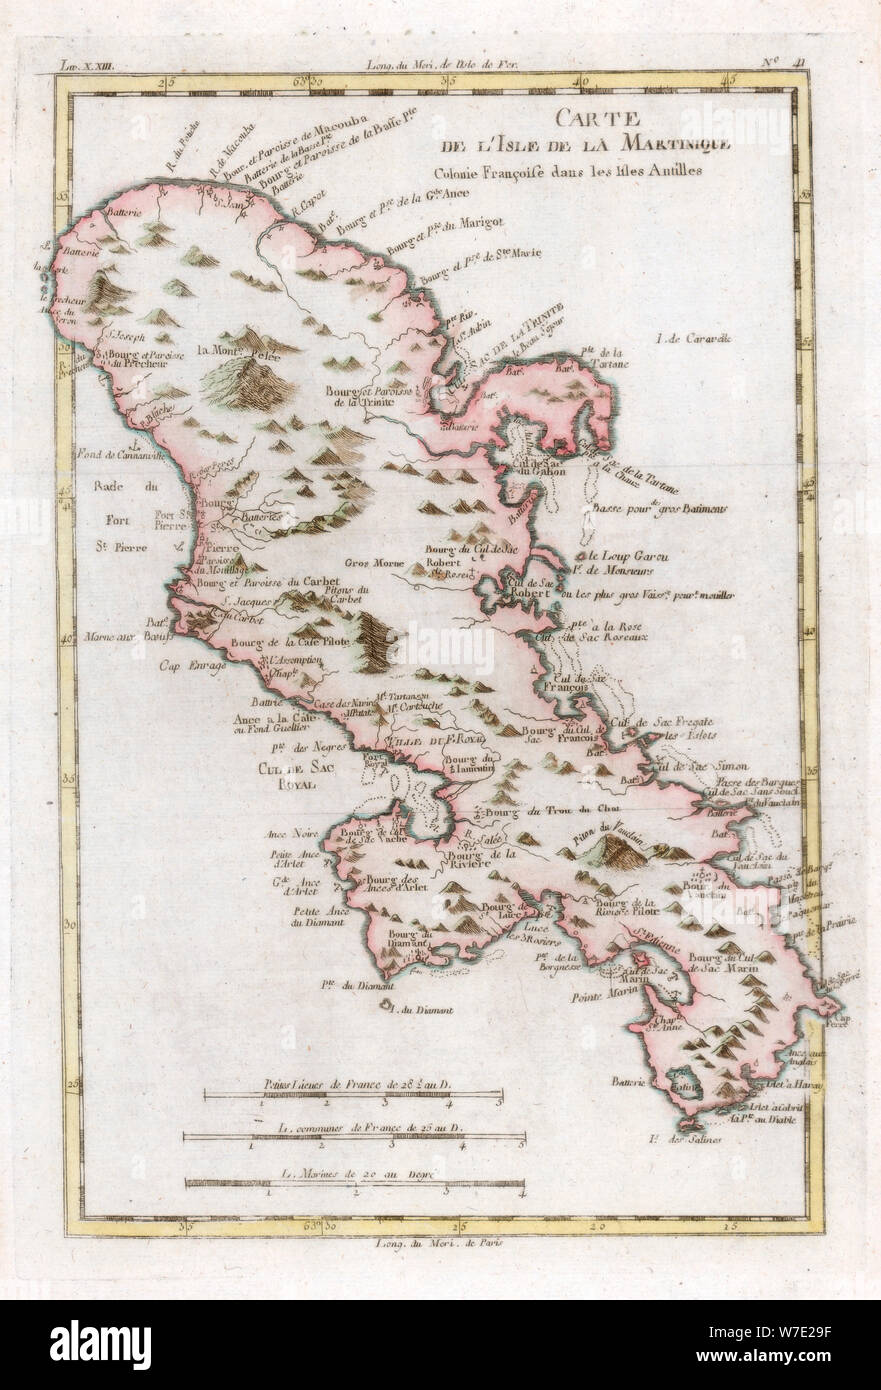 Map of the Caribbean island of Martinique, c1783. Artist: Unknown Stock Photo